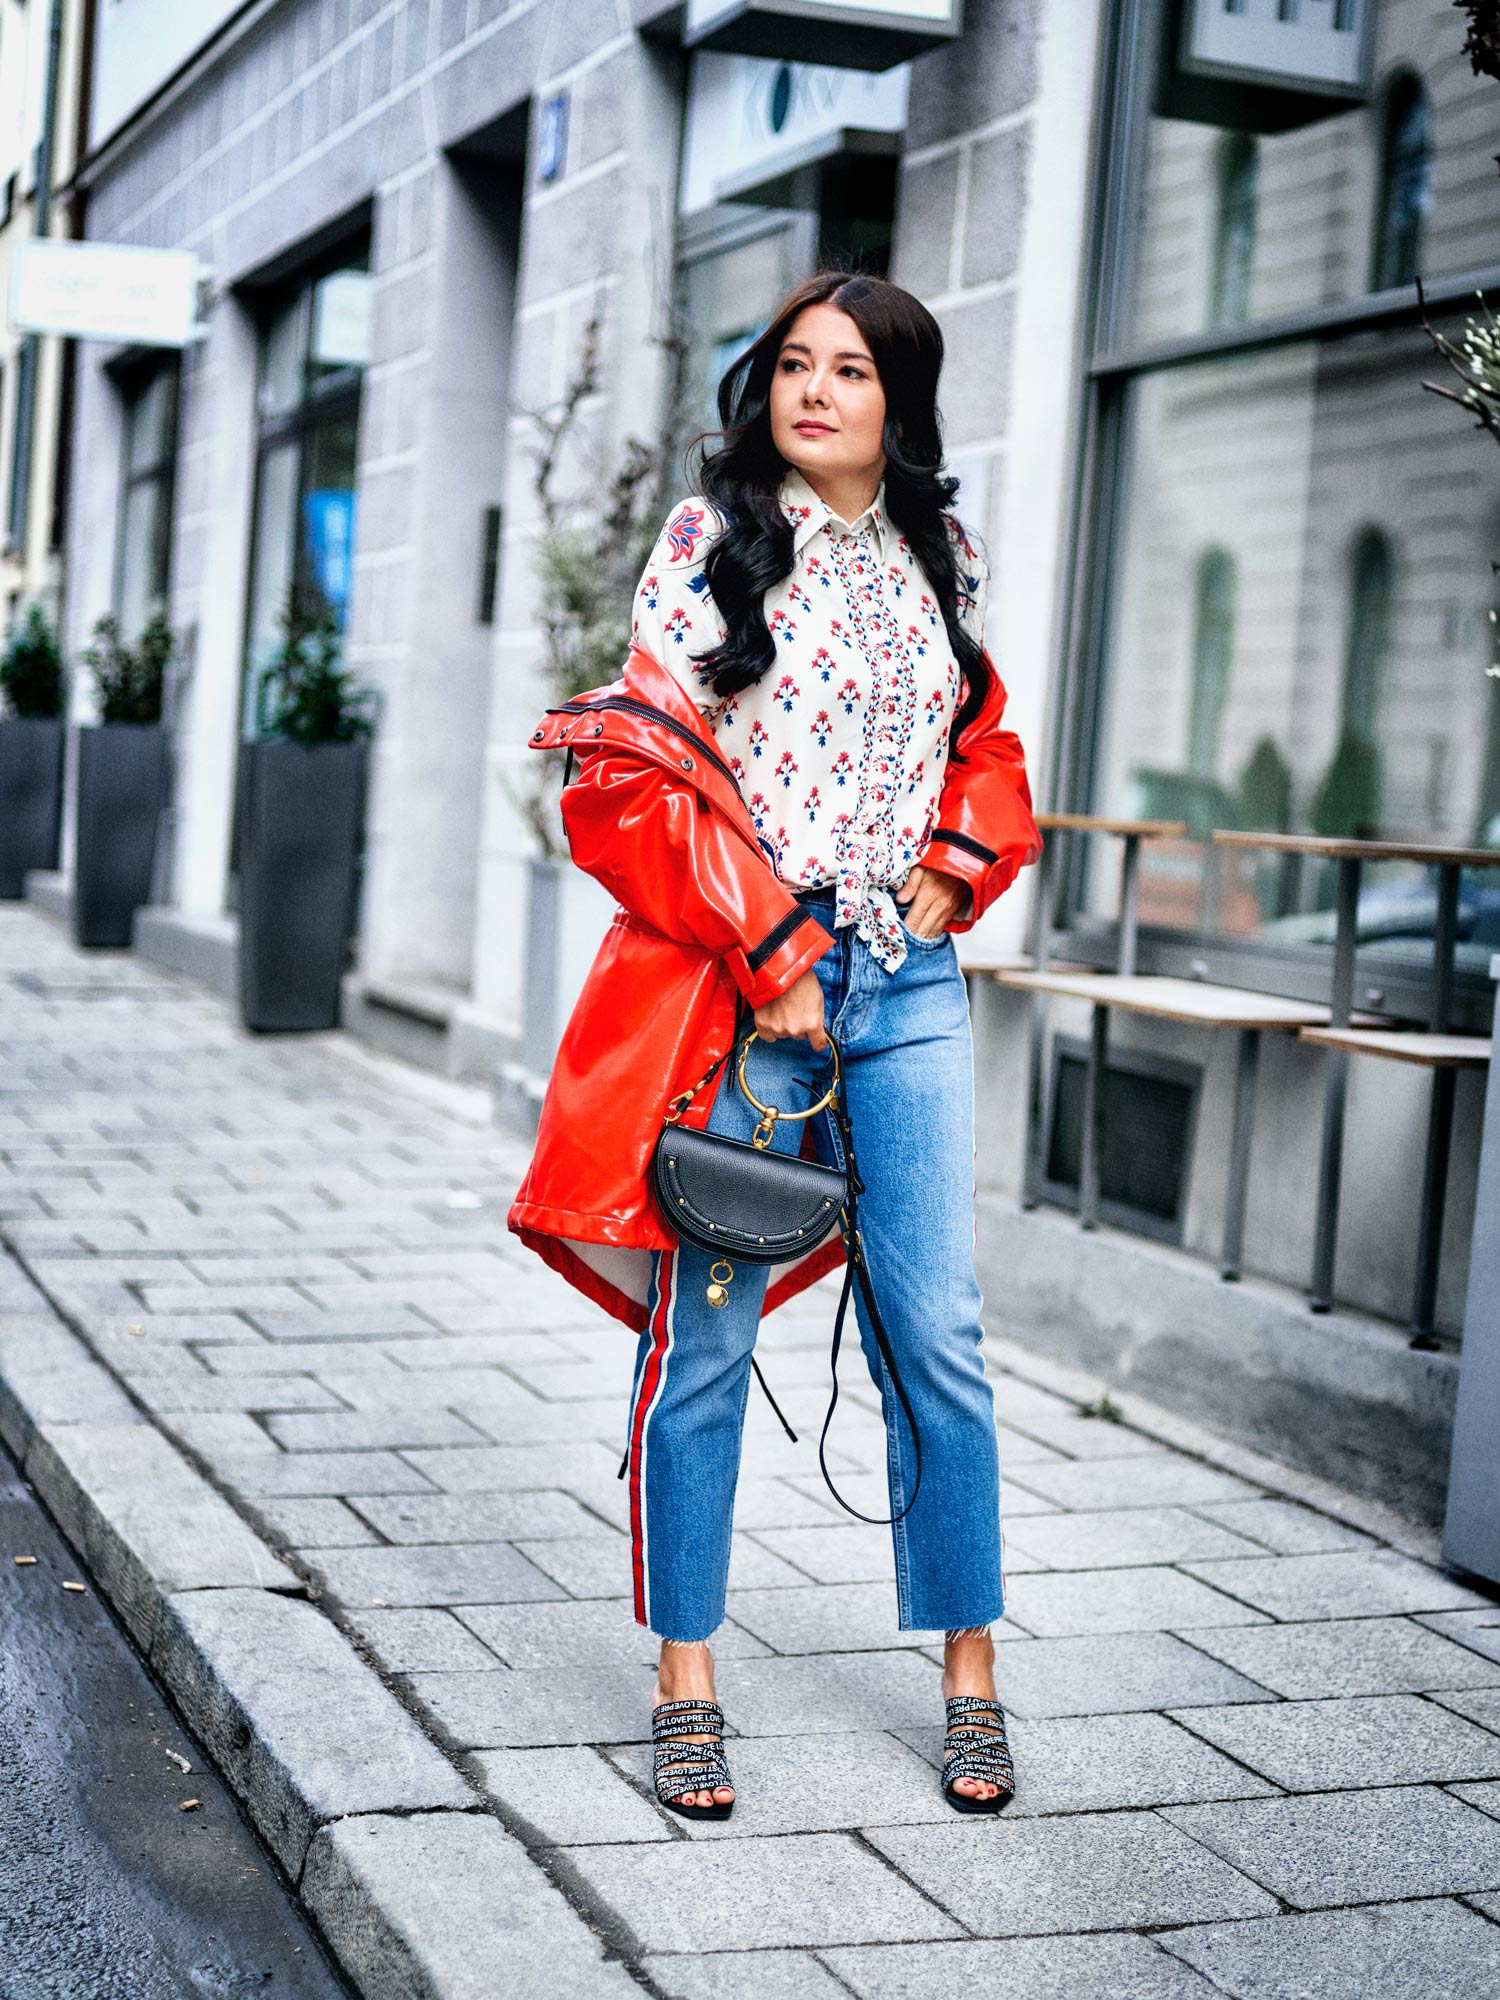 fashion-blogger-aus-muenchen-fashionblogger-lifestyleblogger-beautyblogger-fashion-blogger-modeblogger-modeblog-munich-blog-muenchen-lackleder-regenmaentel-i-m-singing-in-the-rain